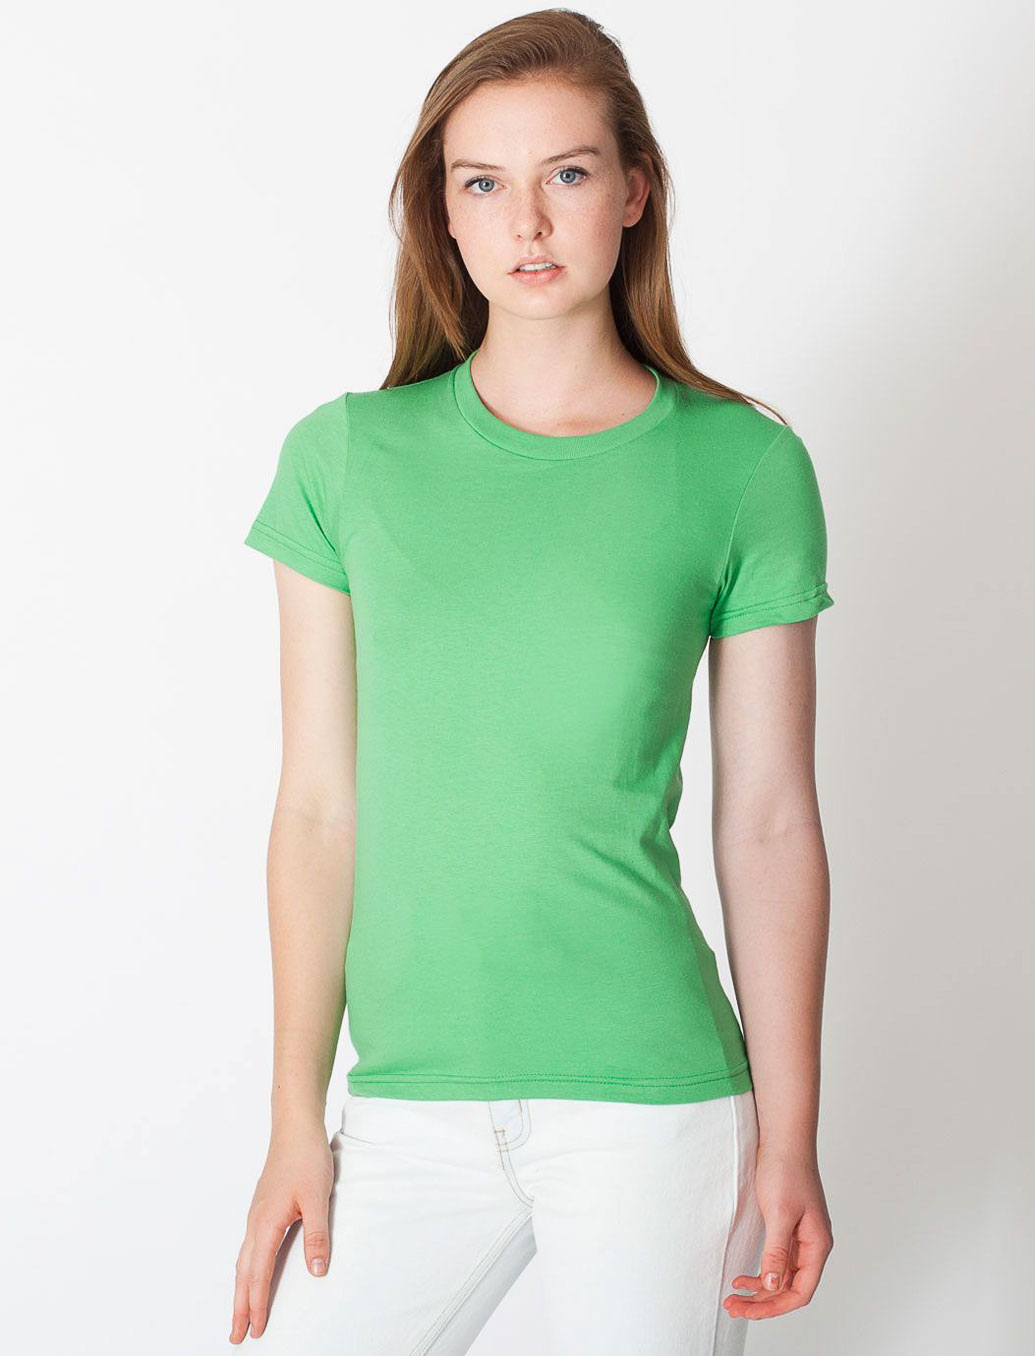 American apparel blanks t shirts and screen printing for Blank tee shirts com